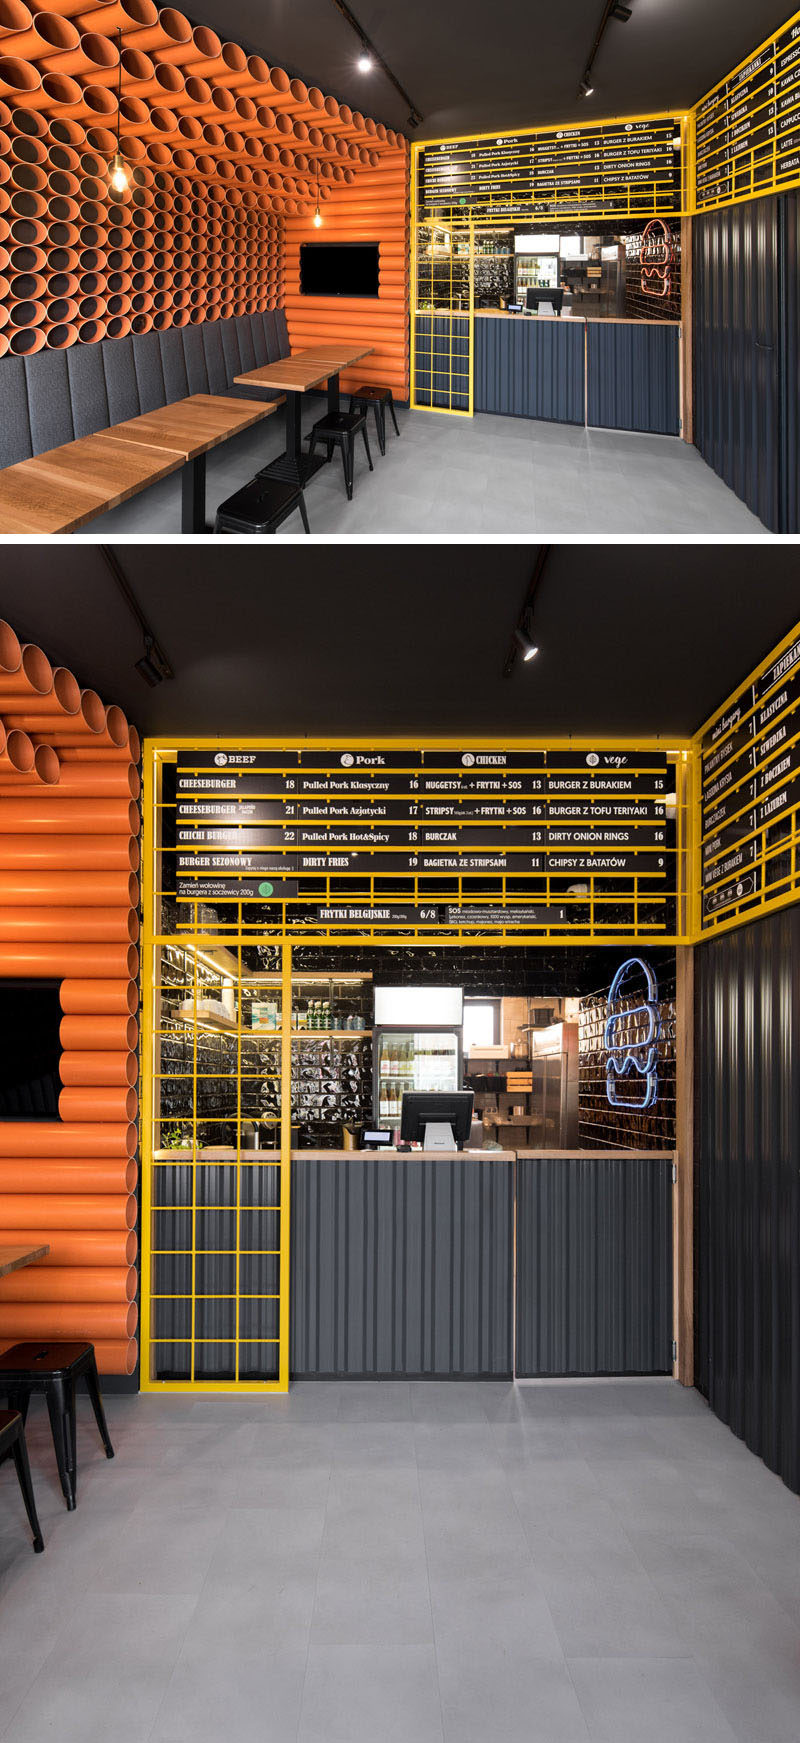 Design elements in this modern restaurant in orange PVC pipes, yellow mesh panels, dark corrugated metal sheet, wood accessories, and black tiles. #InteriorDesign #RestaurantDesign #RestaurantInterior #ModernRestaurant